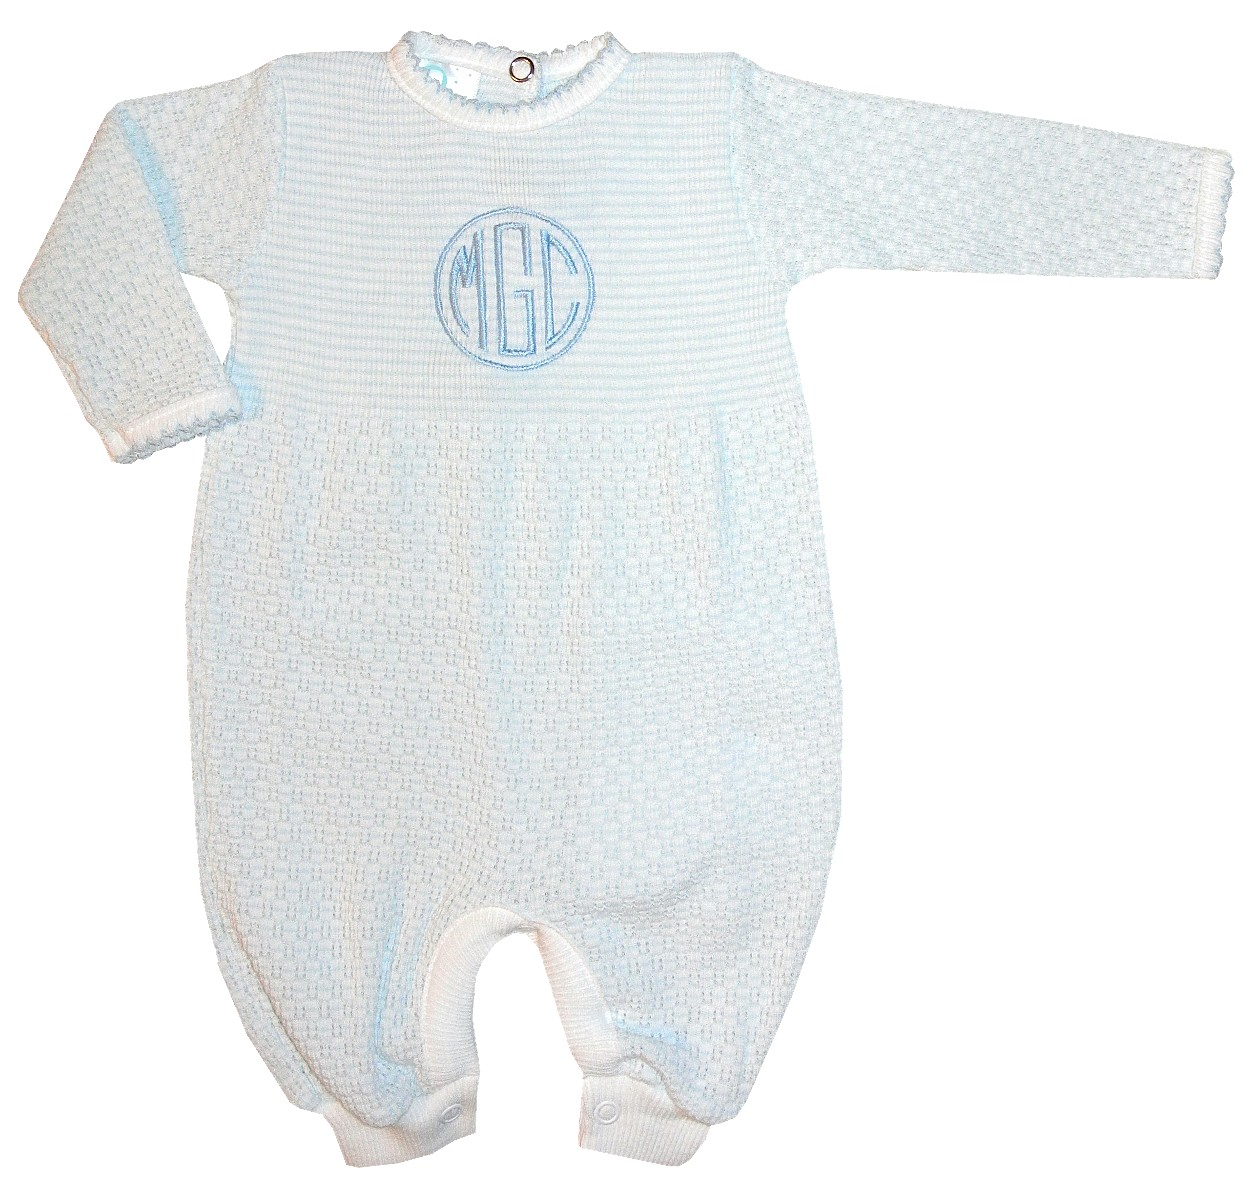 Monogrammed Baby Clothes